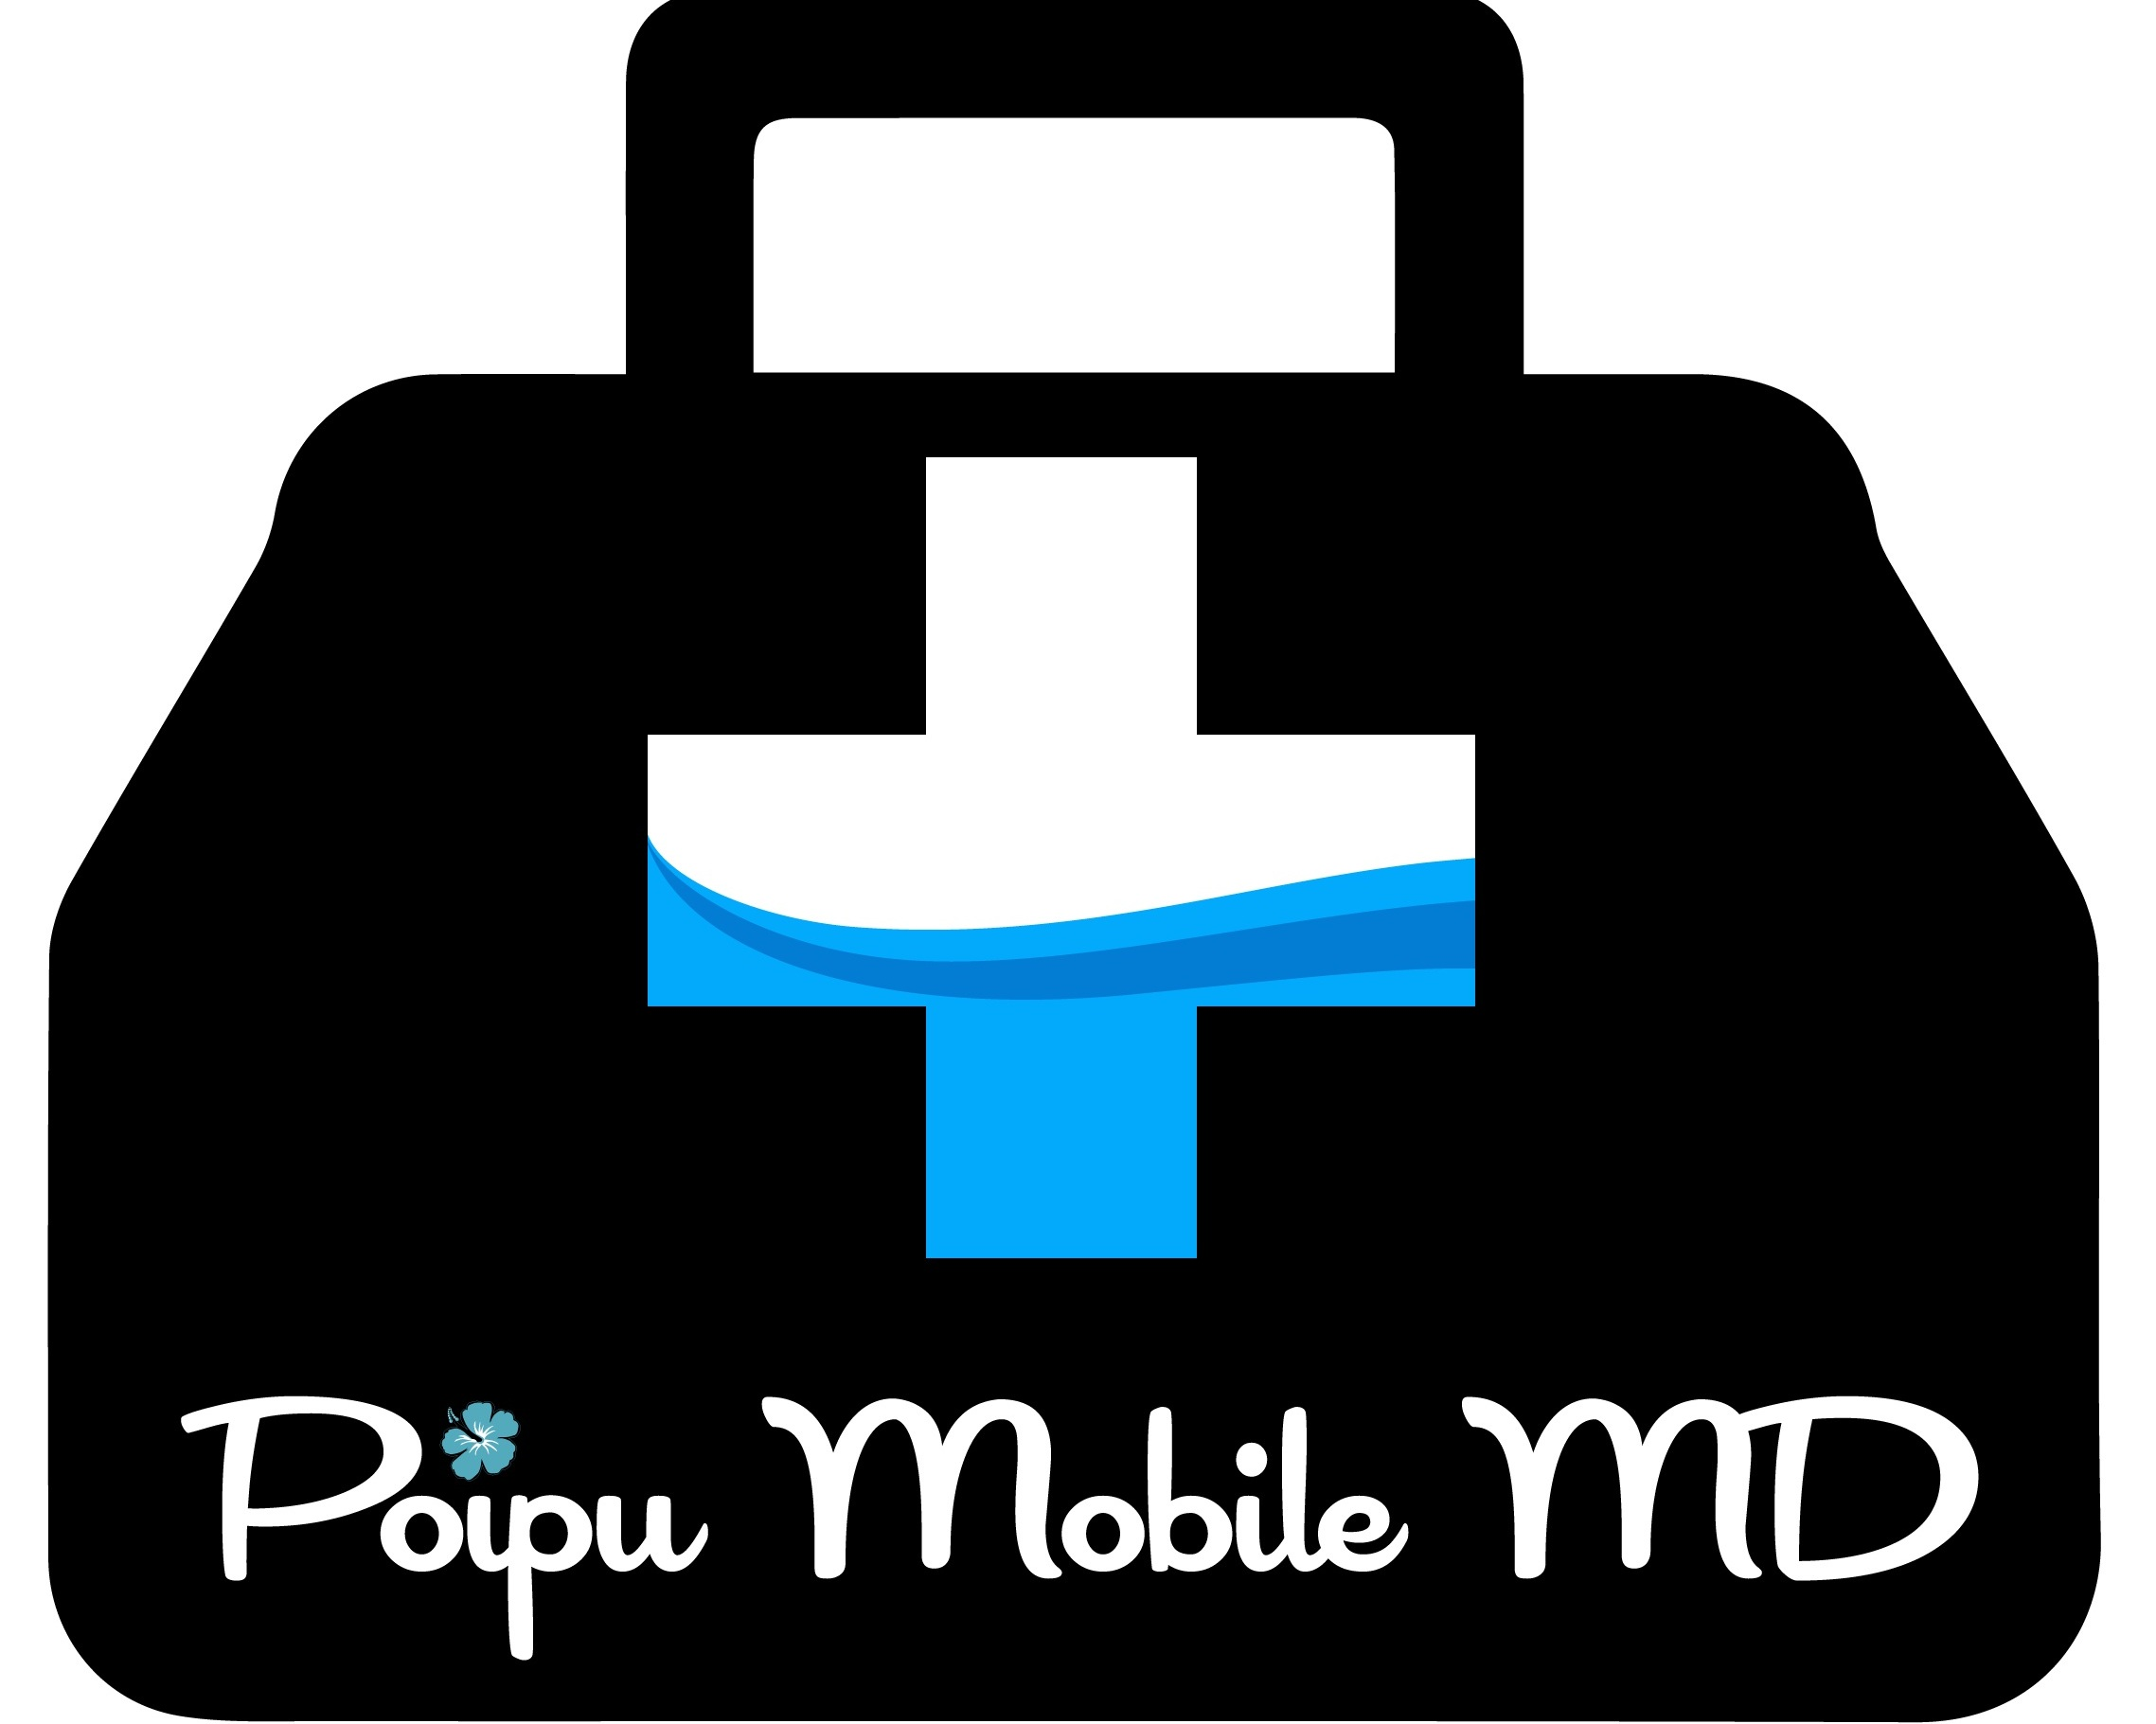 Poipu-Mobile-MD-with-wave.jpg